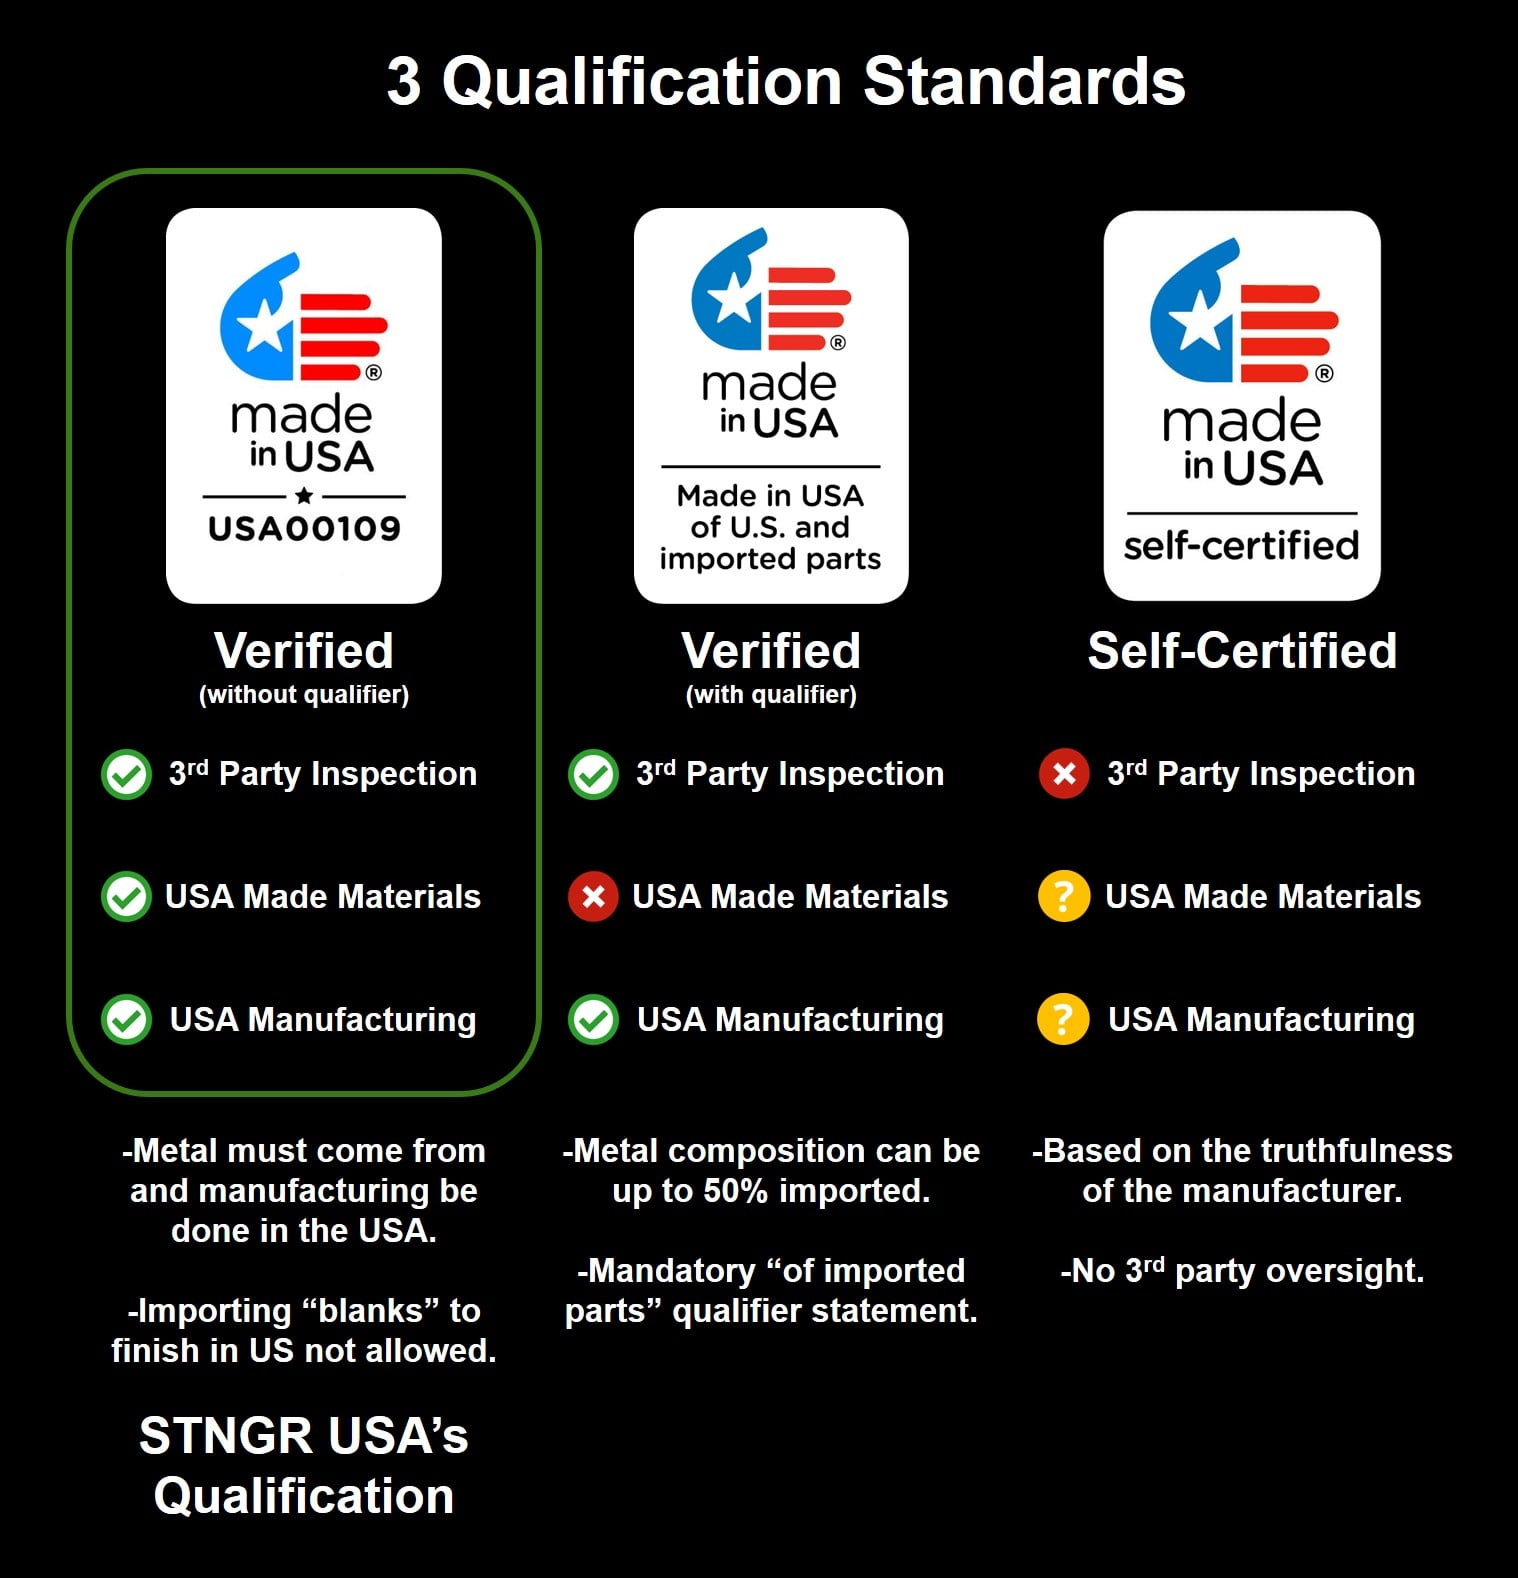 3-qualification-standards-min-min-1-.jpg